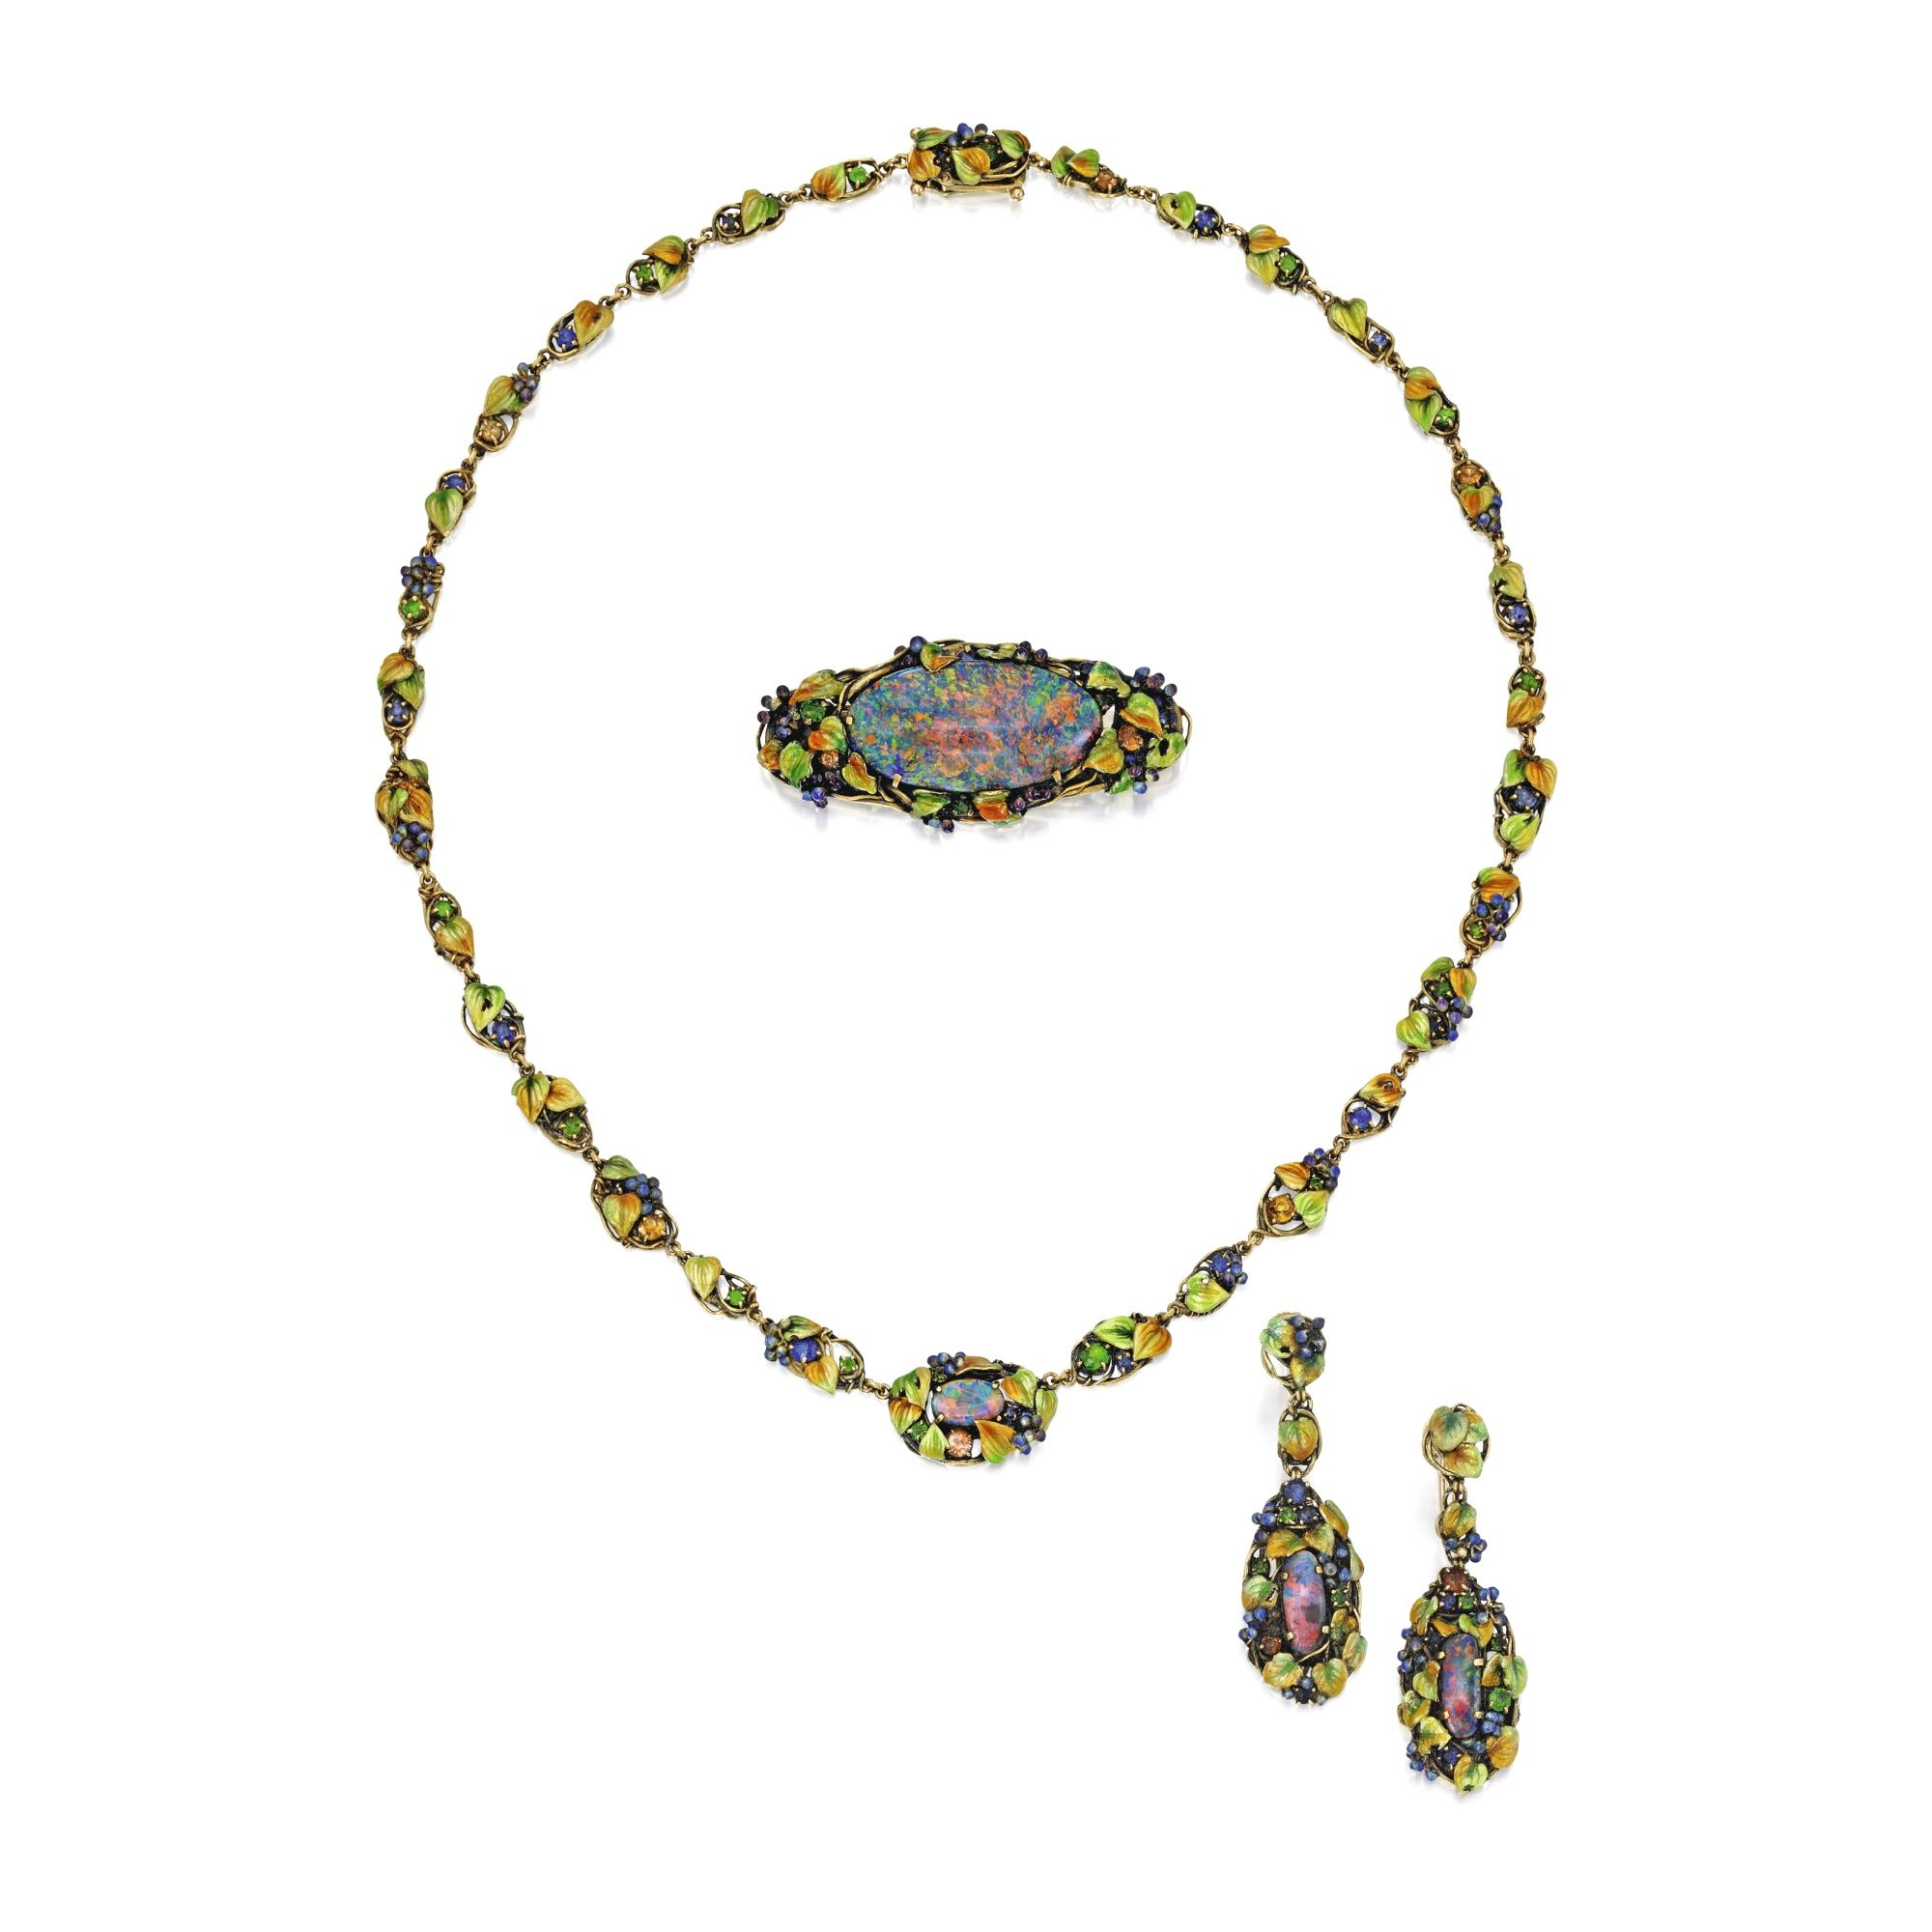 Group of Gold, Black Opal, Enamel and Colored Stone Jewelry, Tiffany & Co., Designed by Louis Comfort Tiffany  Comprising a necklace, brooch and pair of pendant-earrings decorated with grape clusters and leaves applied with multi-colored translucent enamel, accented by small round green garnets sapphires and citrines, each piece set with a cabochon opal, the reverse of the pendant-earrings highlighted with additional enameled leaves, necklace length 17 inches